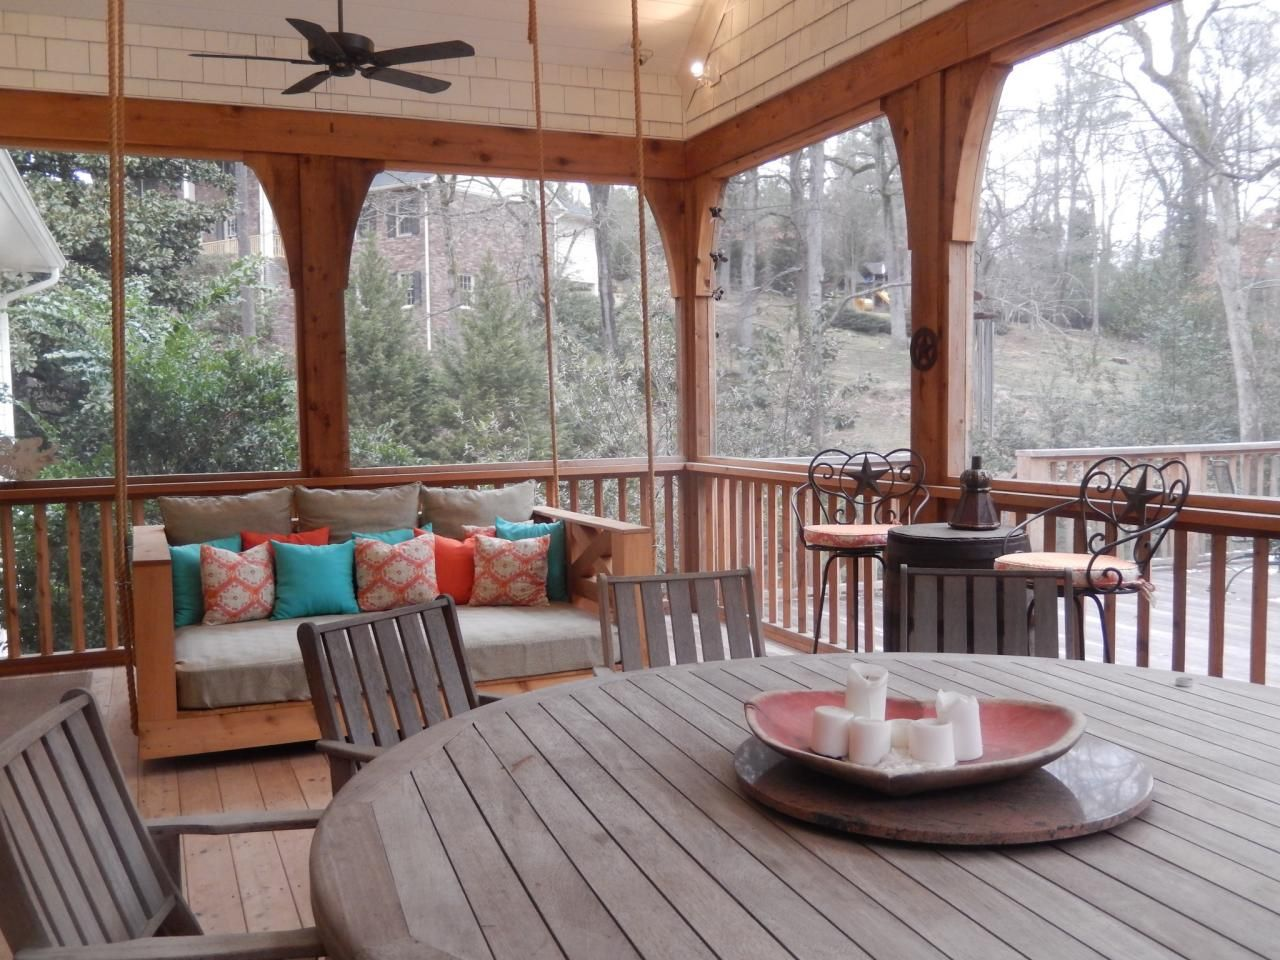 The custom-made bed swing on this Atlanta back porch beckons people to read, chat and nap among the natural surroundings. The swing is one of the homeowners' favorite elements of their outdoor living space.